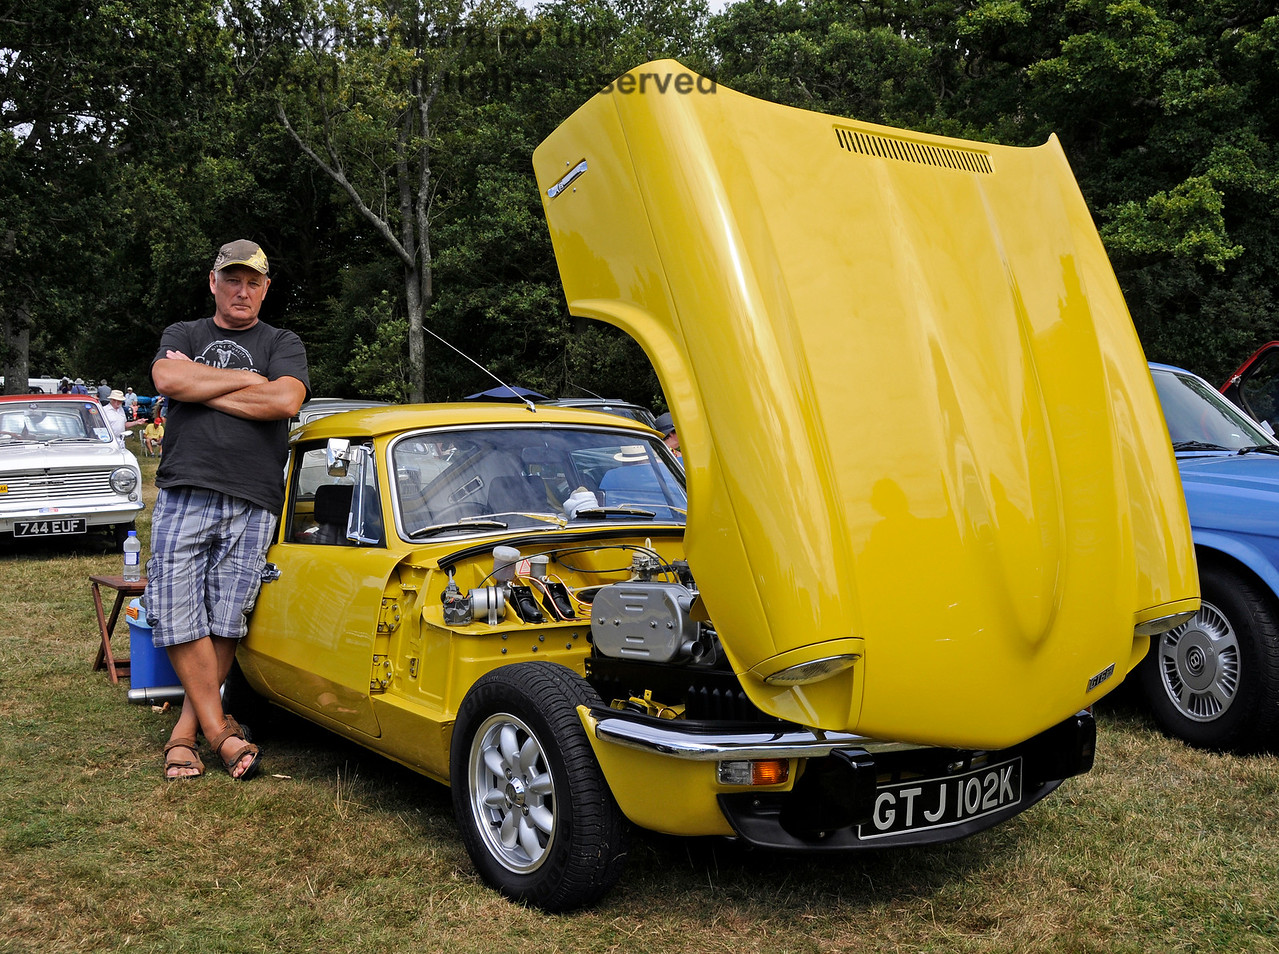 Highly commended in the Best Vintage Car category was Ian Gordon with his Triumph GT6 Mk 3, GTJ102K.  Vintage Transport Weekend, Horsted Keynes.  09.08.2015   13639